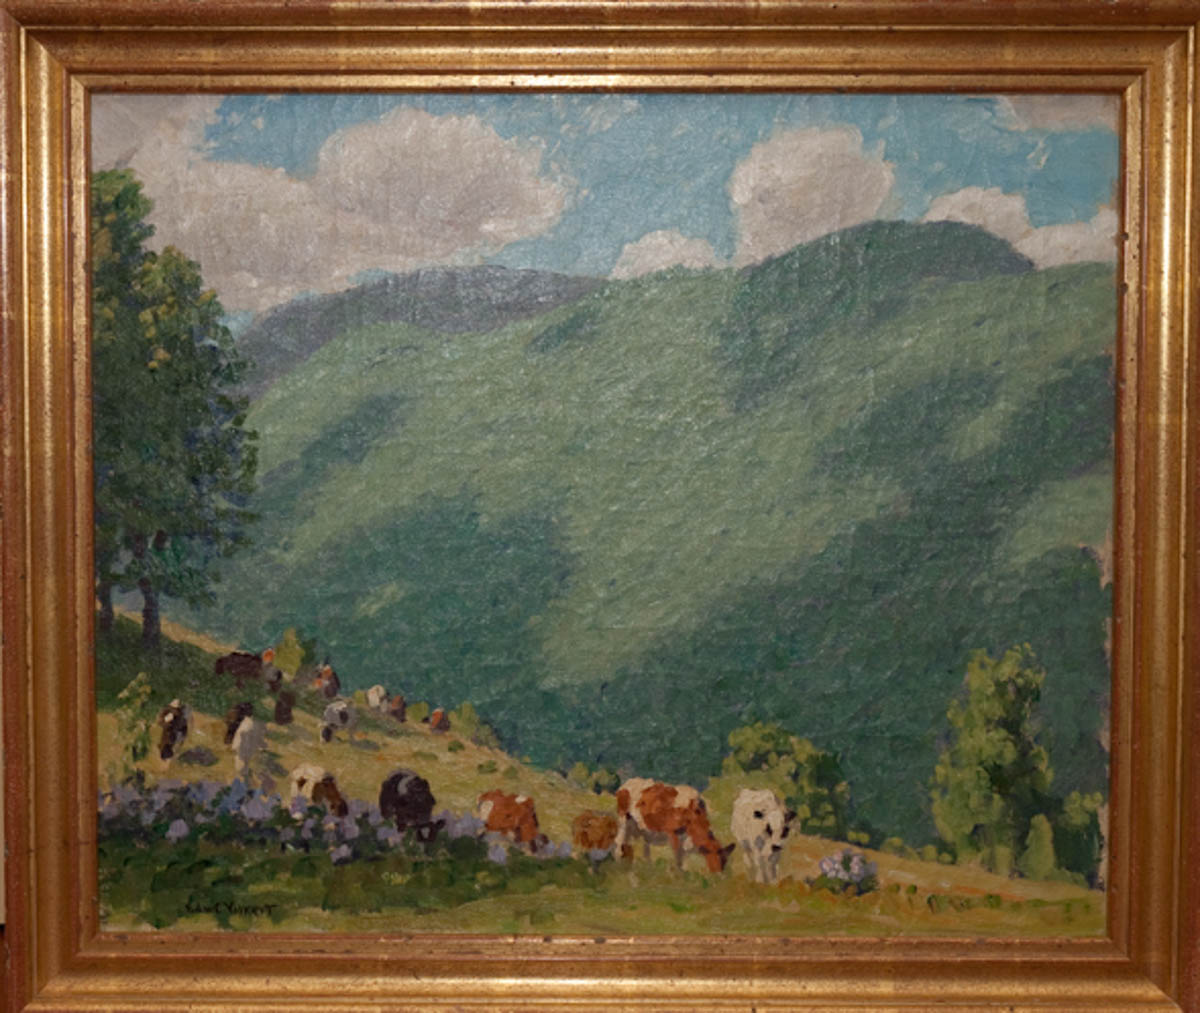 Untitled [Guernseys and Holsteins in field with green mountain in the background]